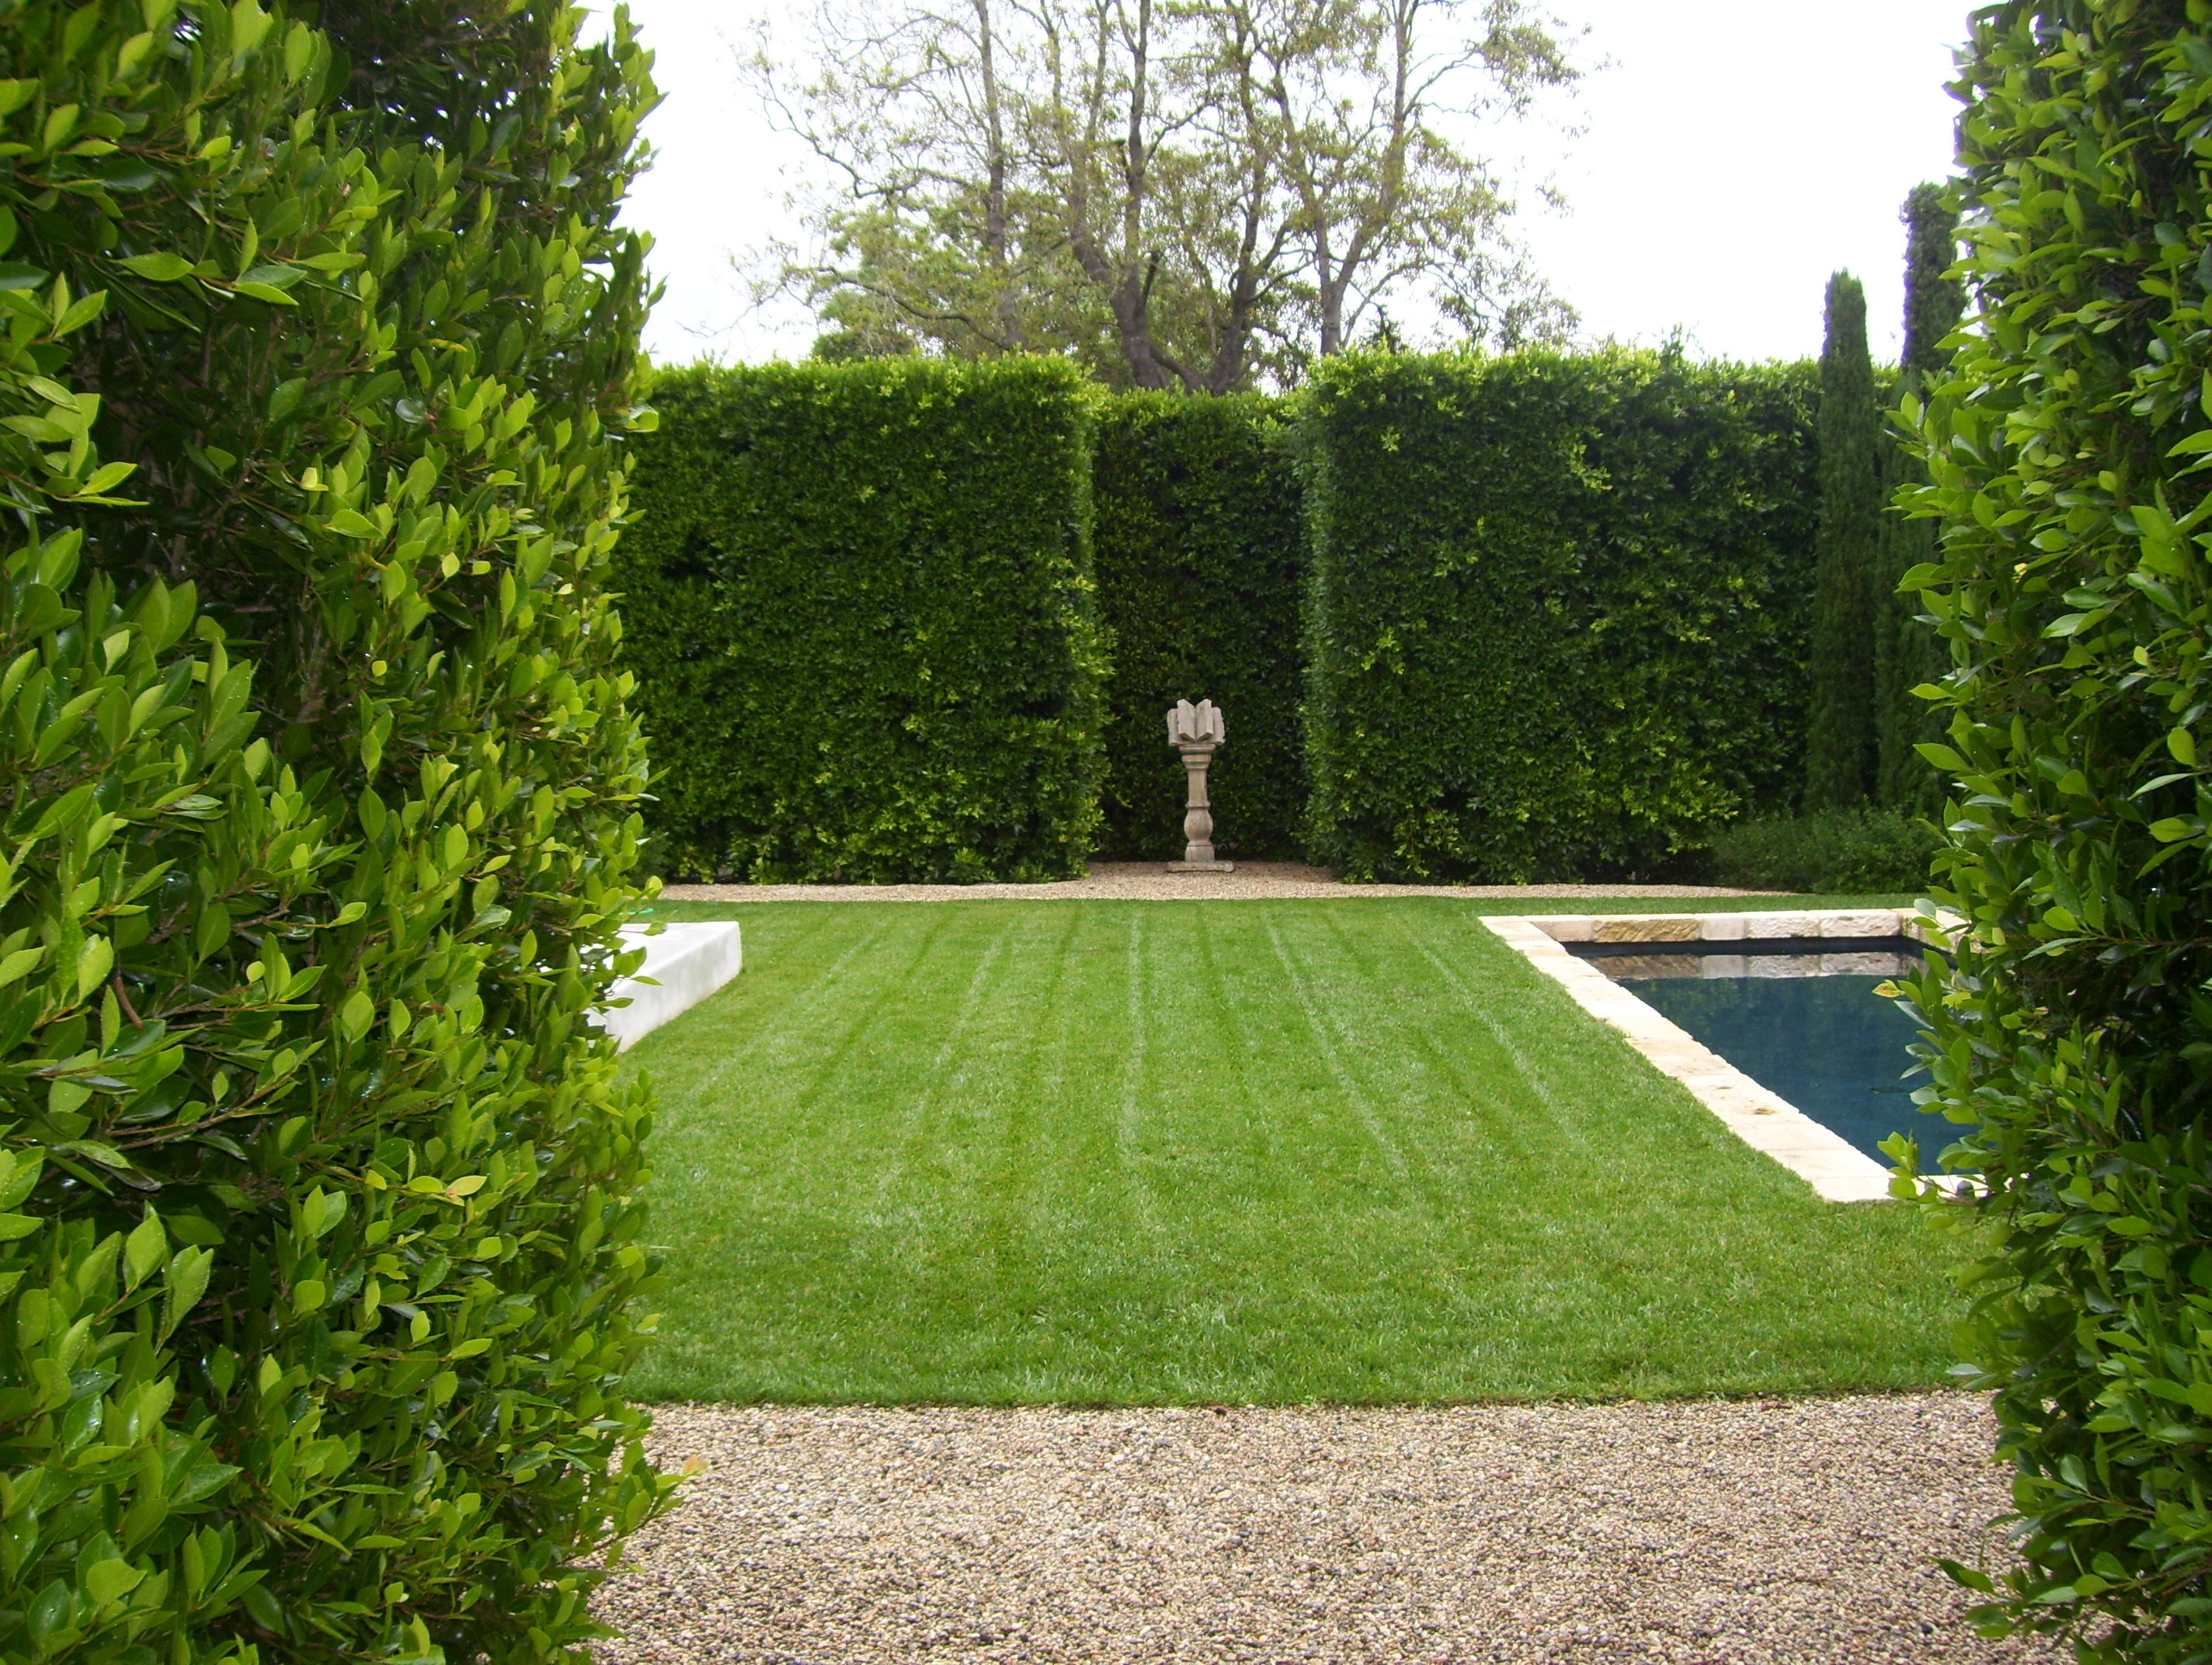 Landscaping Of Garden Pictures : Speciality landscaping ideas santa barbara